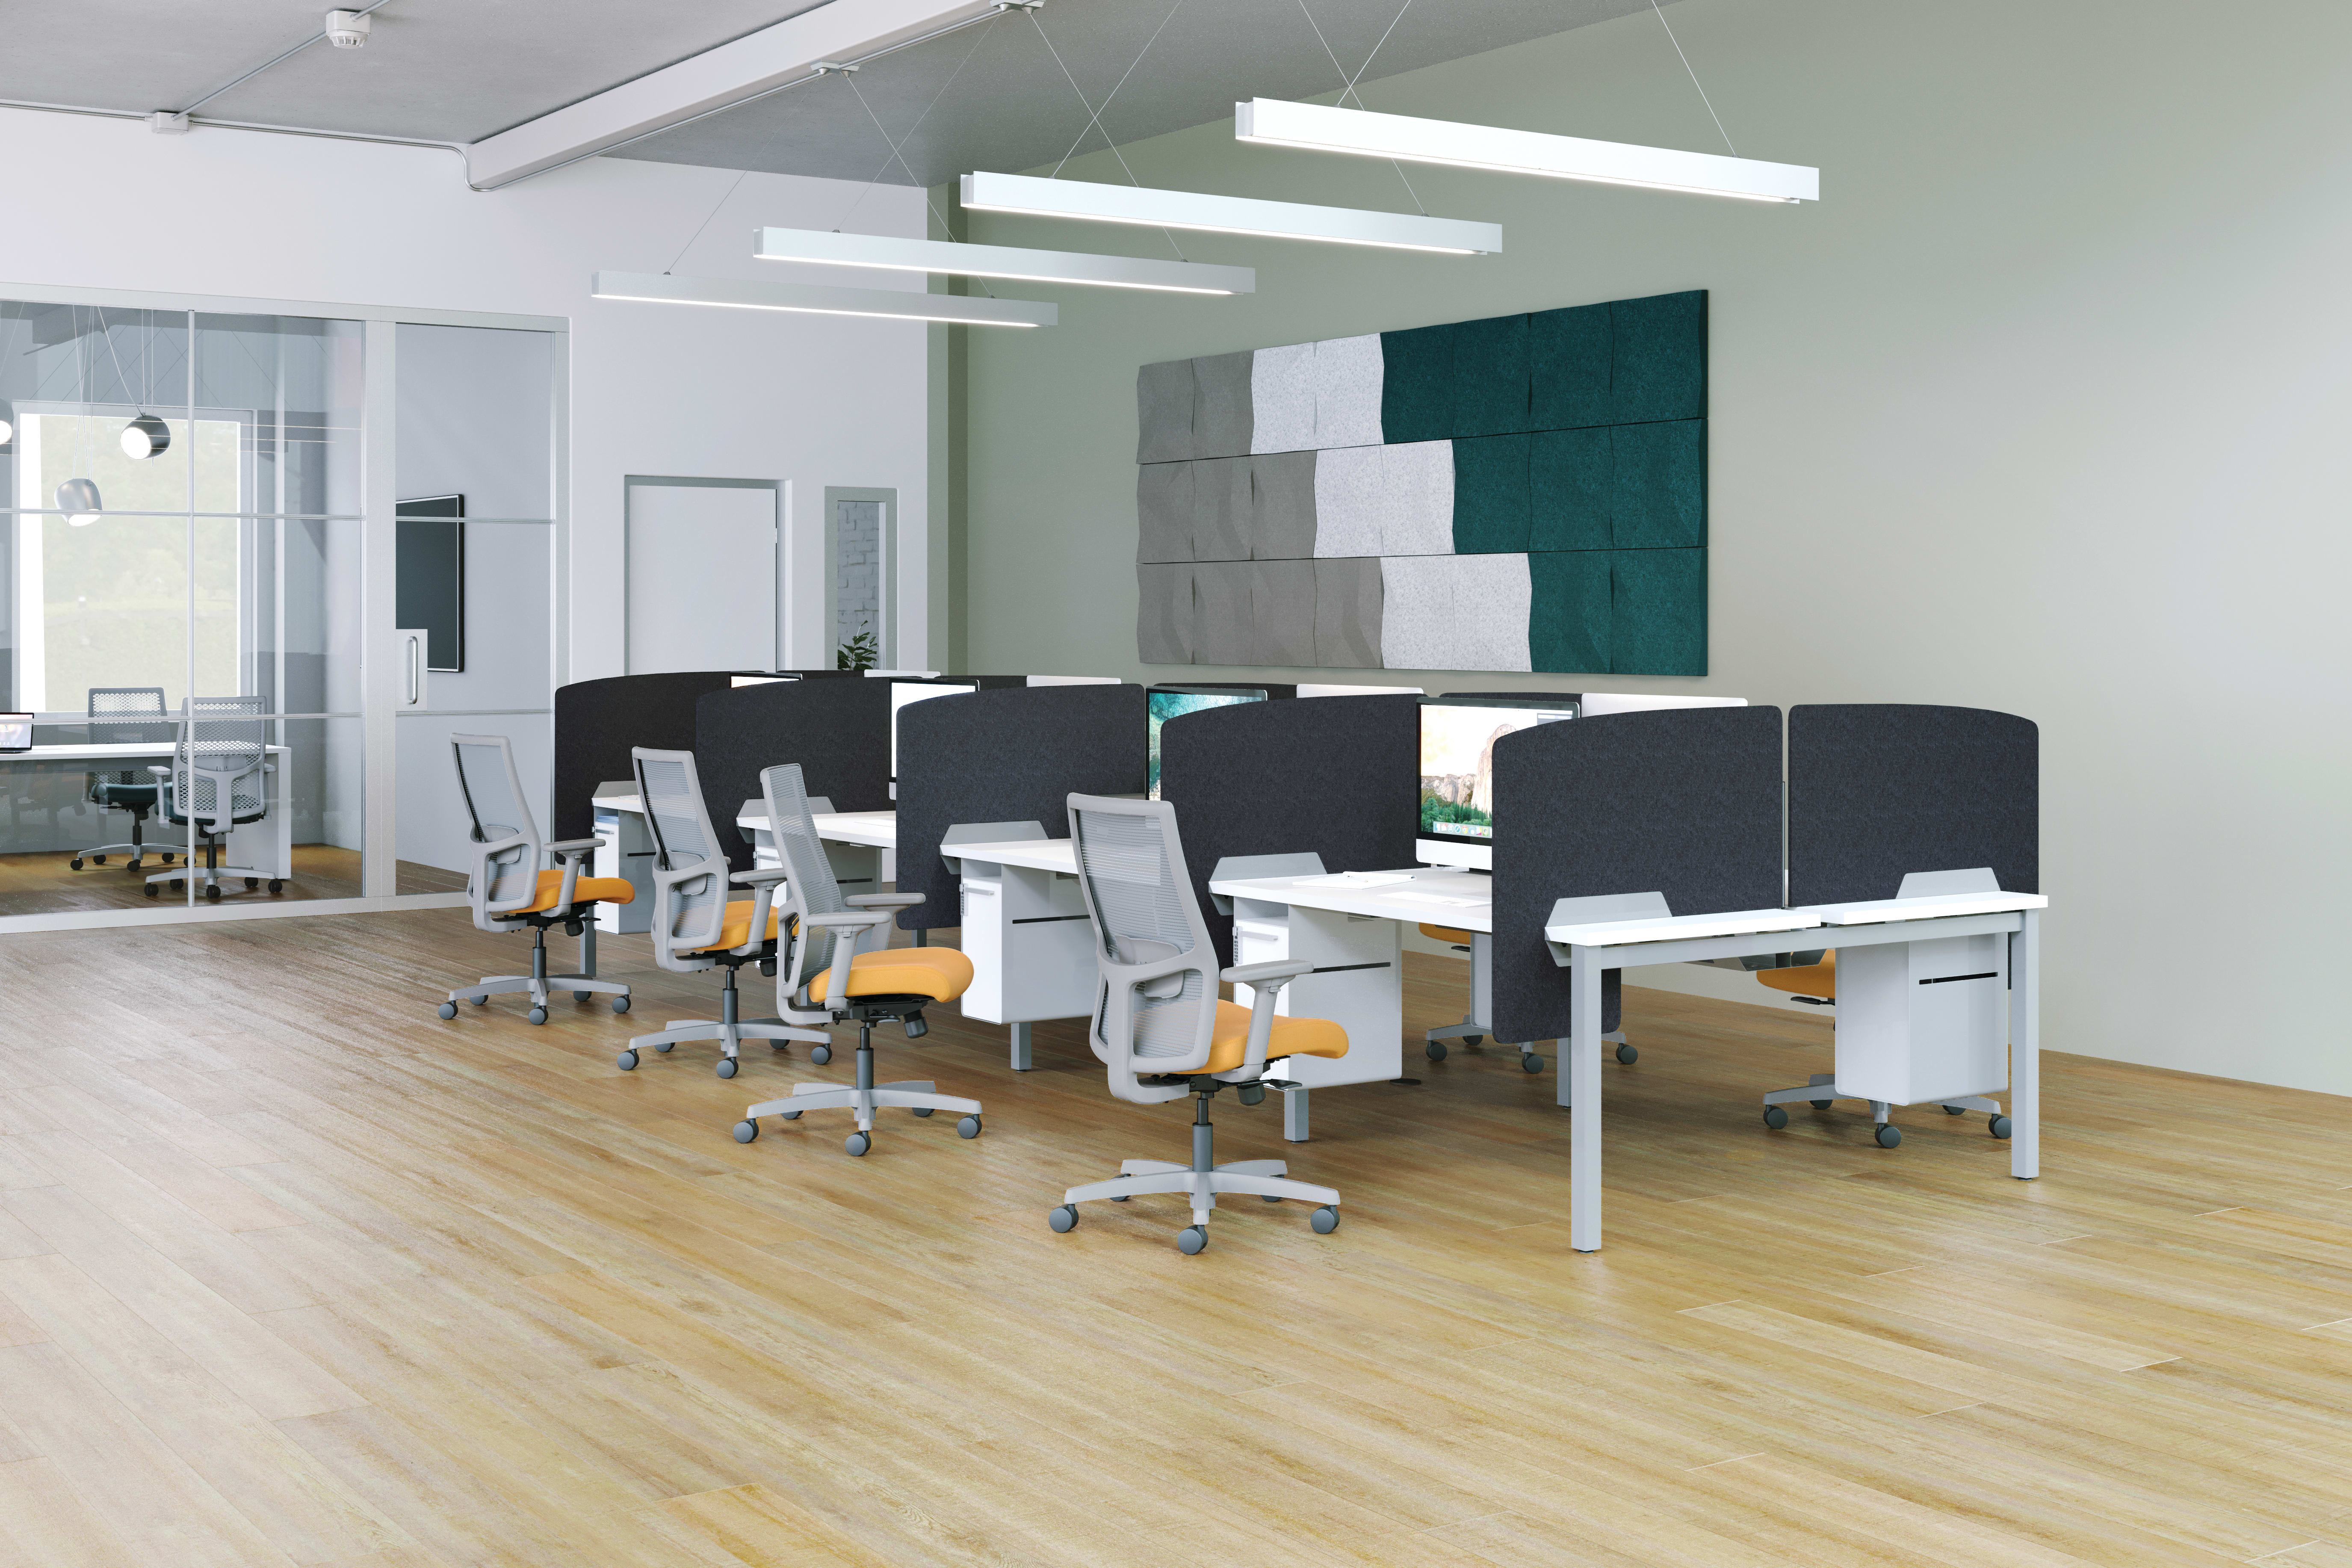 Ignition Chair, Empower Workstations, PET Screens, Acoustic Wall tiles, and Fuse Storage.